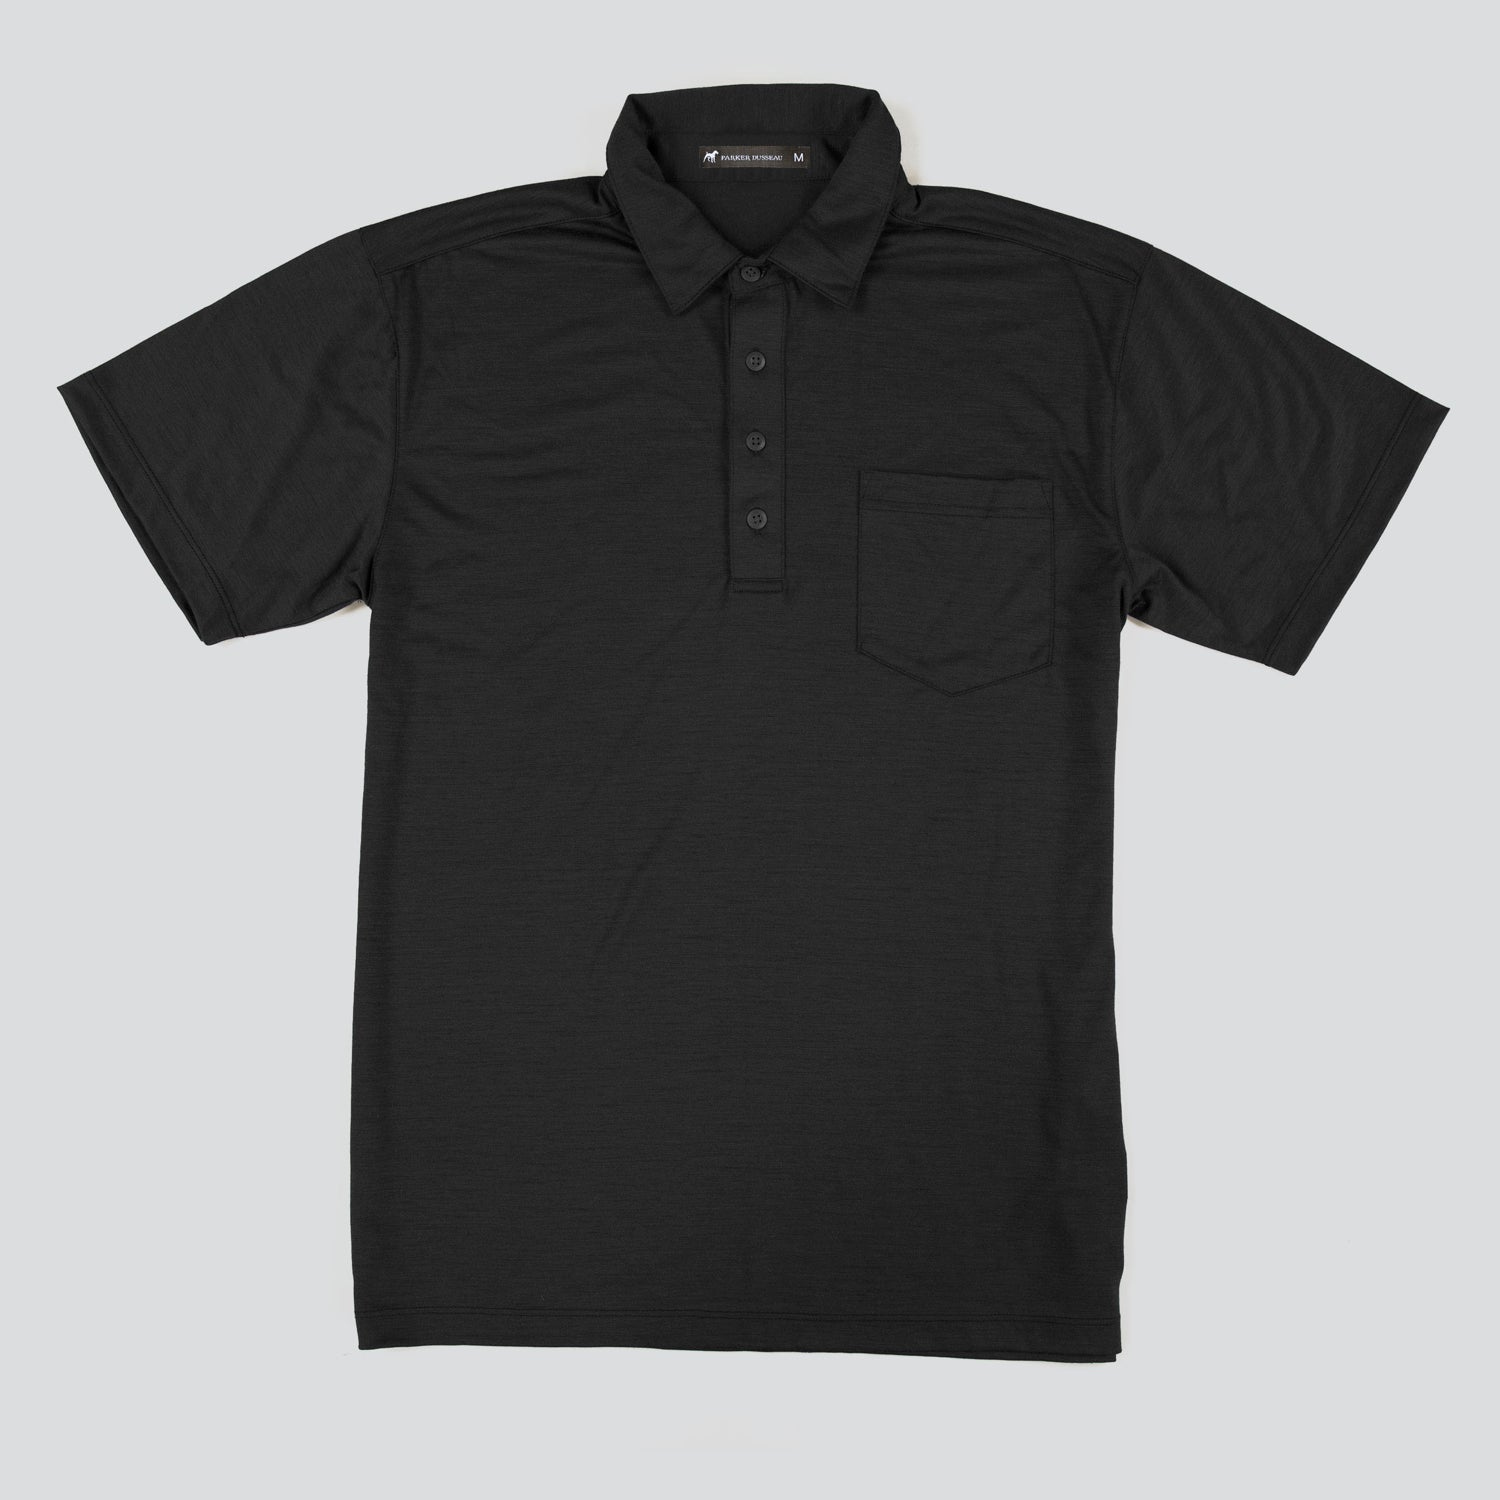 Merino Wool Short Sleeve Polo - Black Polo Shirt- Parker Dusseau : Functional Menswear Essentials for the Always Ready Lifestyle. Based in San Francisco, California